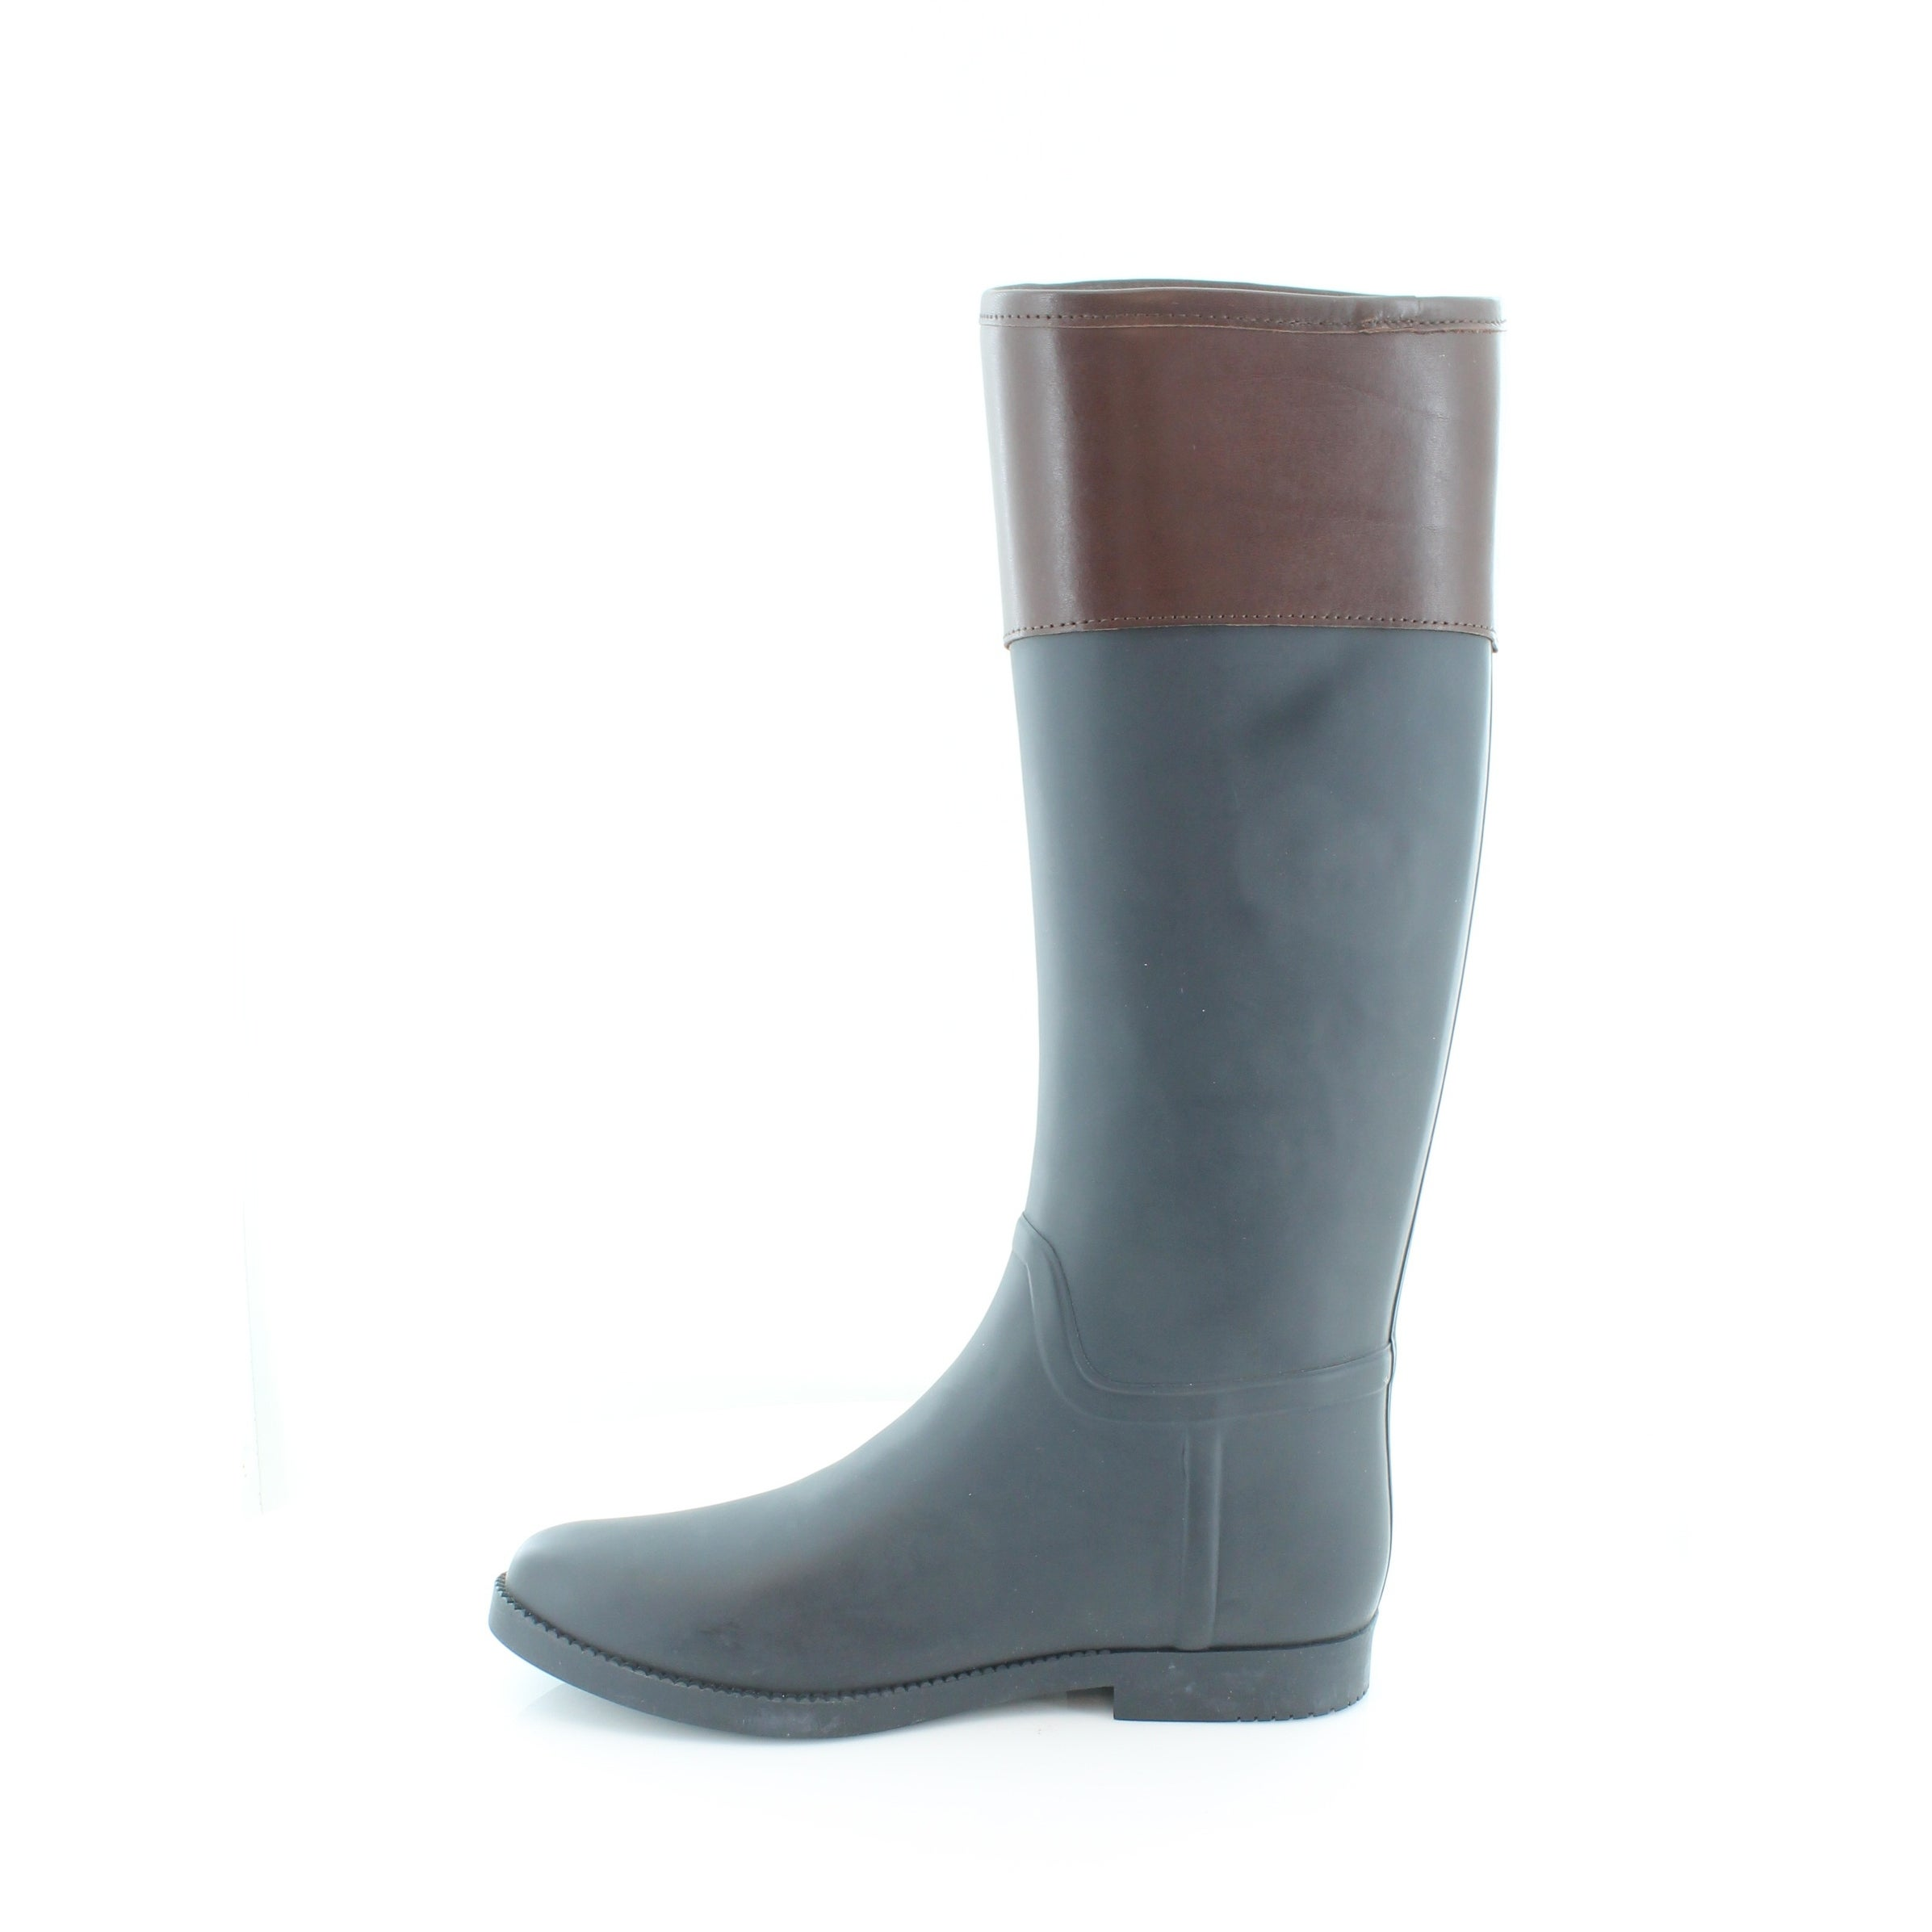 4917ce6240ff Shop Tory Burch Classic Rain Boot Women s Boots Navy   Almond - Free  Shipping Today - Overstock - 21554151